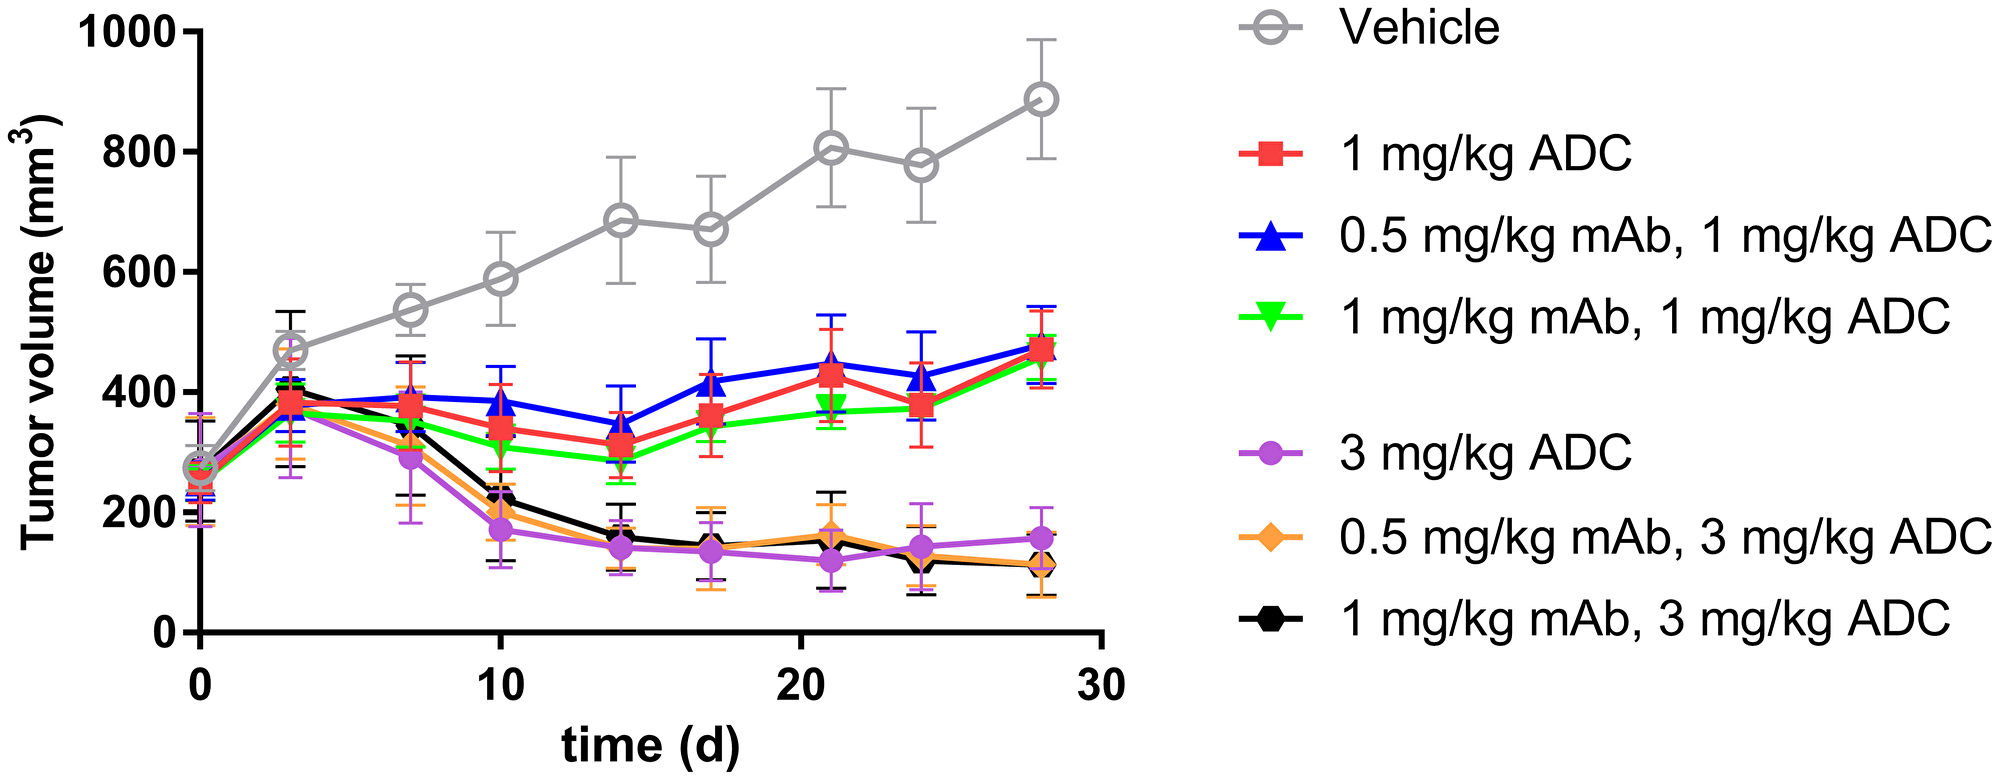 In vivo LuCaP96.1 tumor inhibition with anti-TENB2 ADC administered at 1 or 3 mg/kg intravenously in a single dose to male SCID-beige mice bearing established LuCaP96.1 tumor explants.